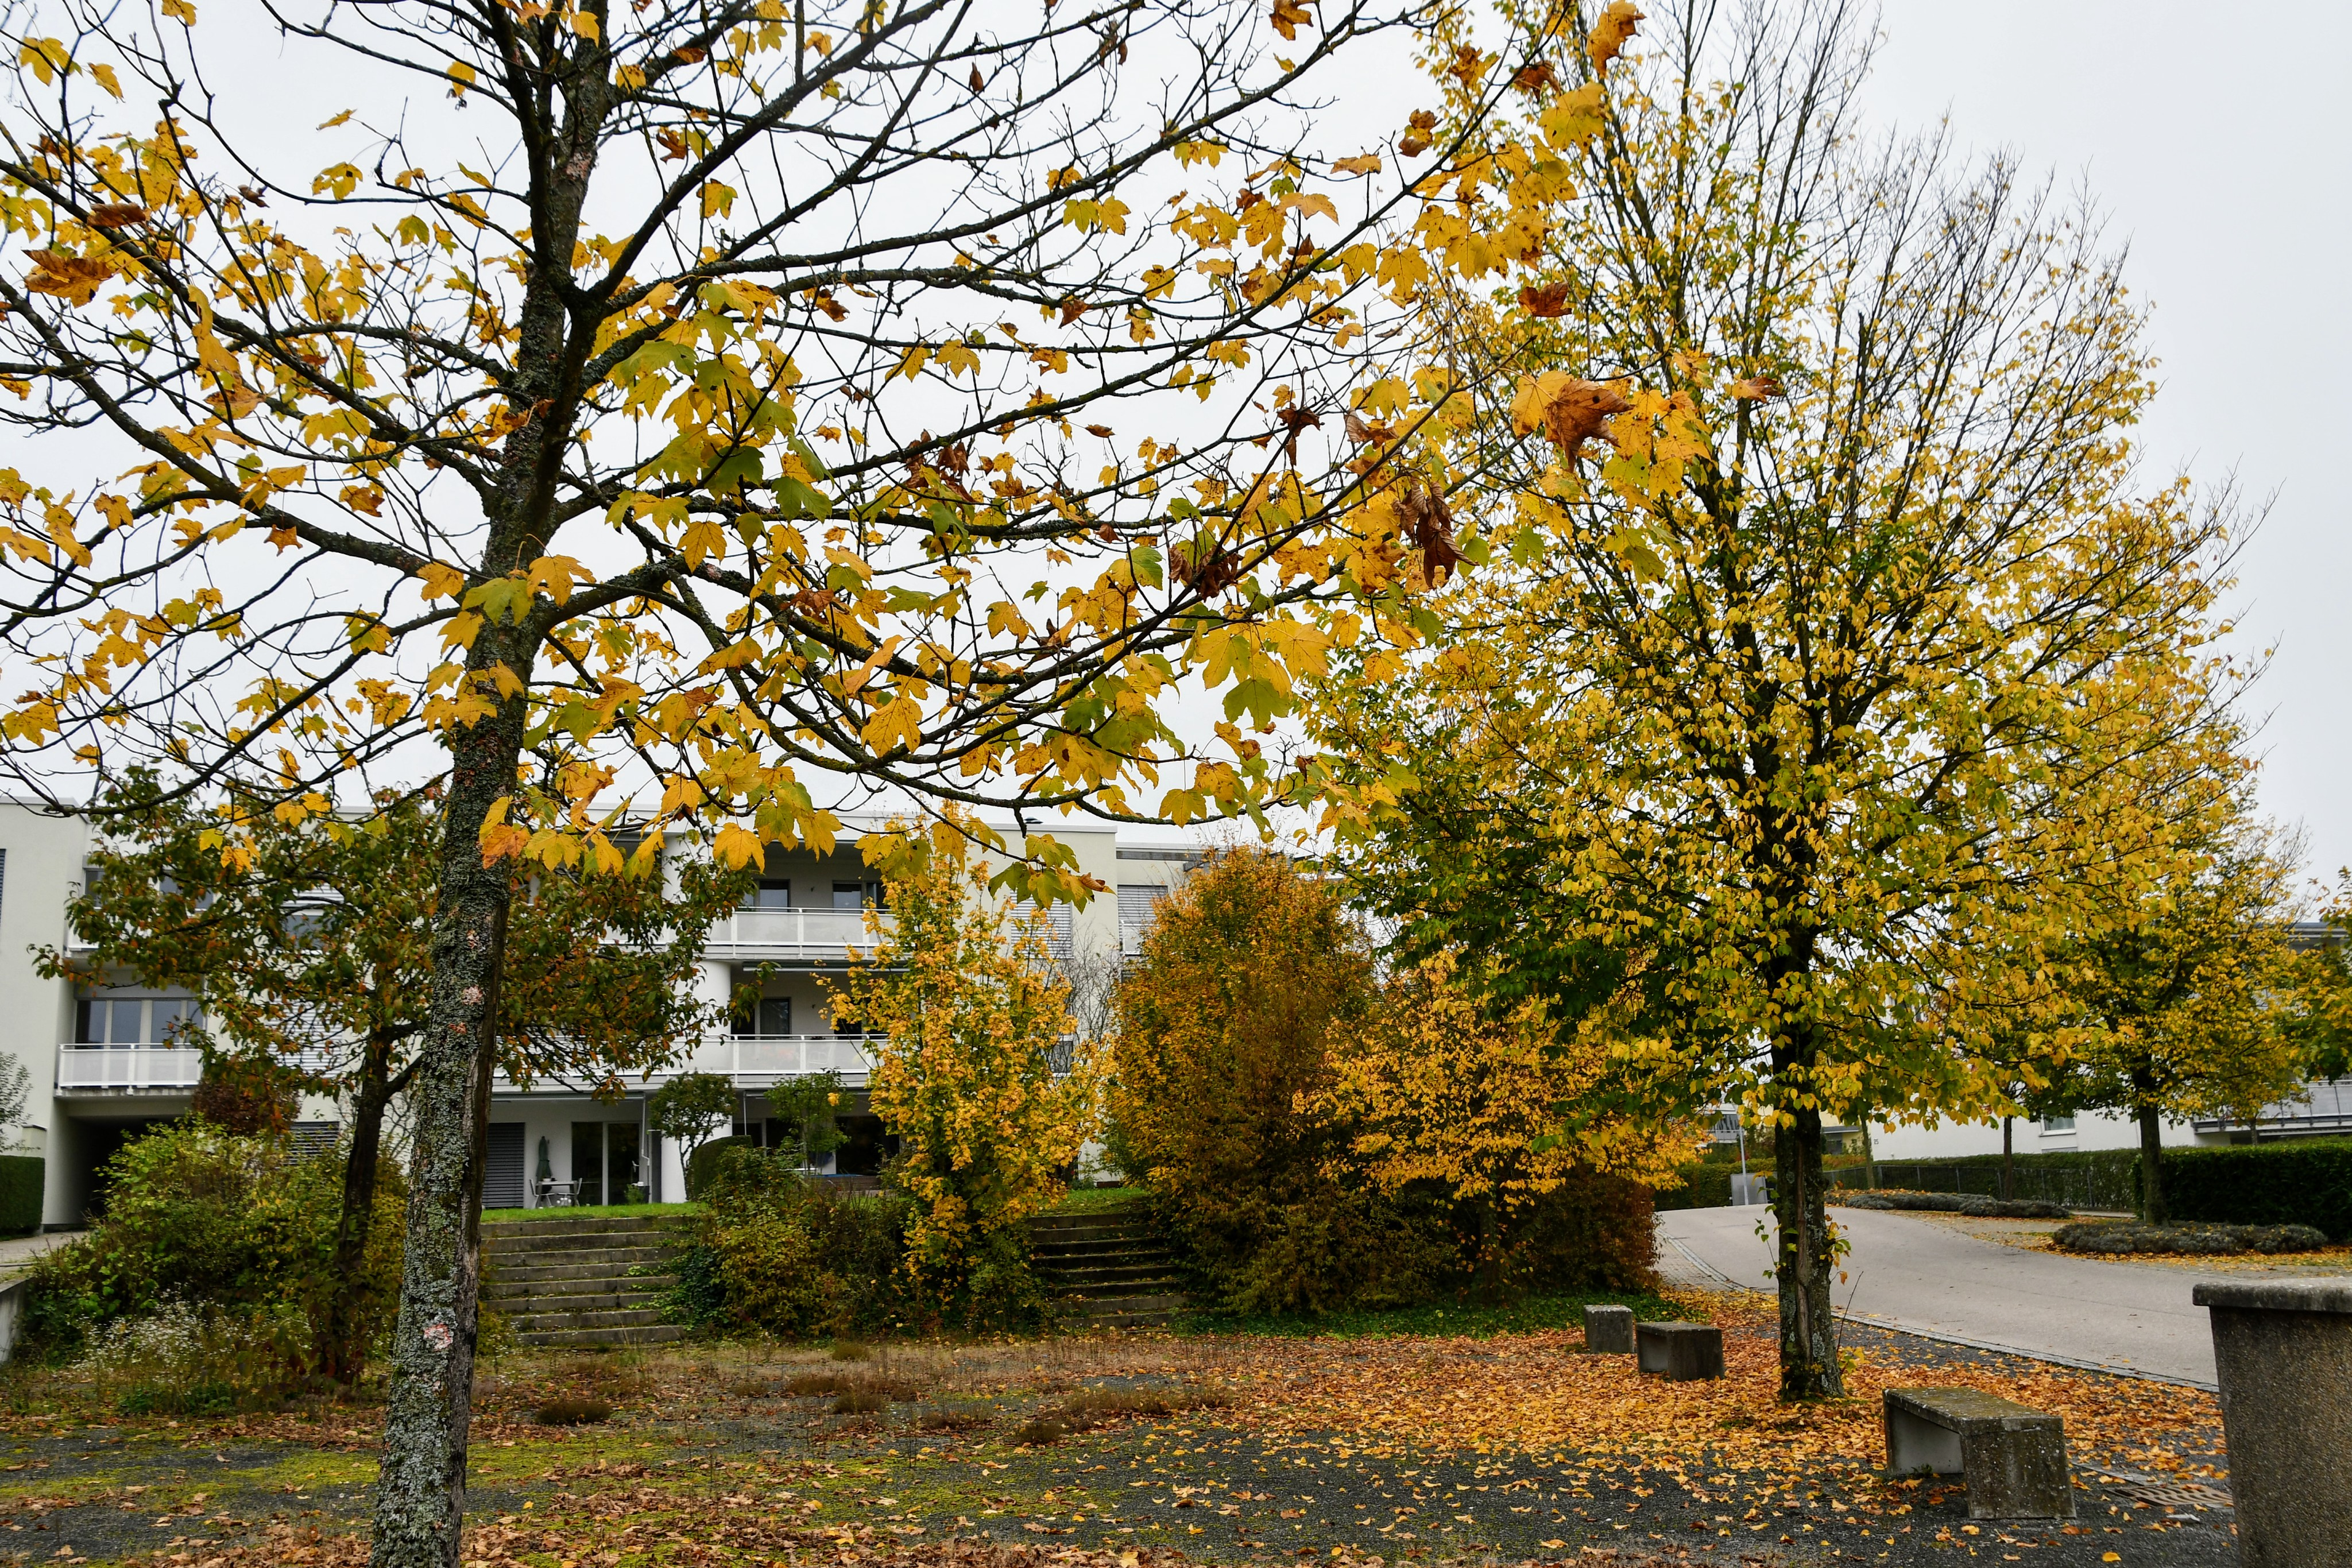 autumn-trees-and-leaves-20.10-54